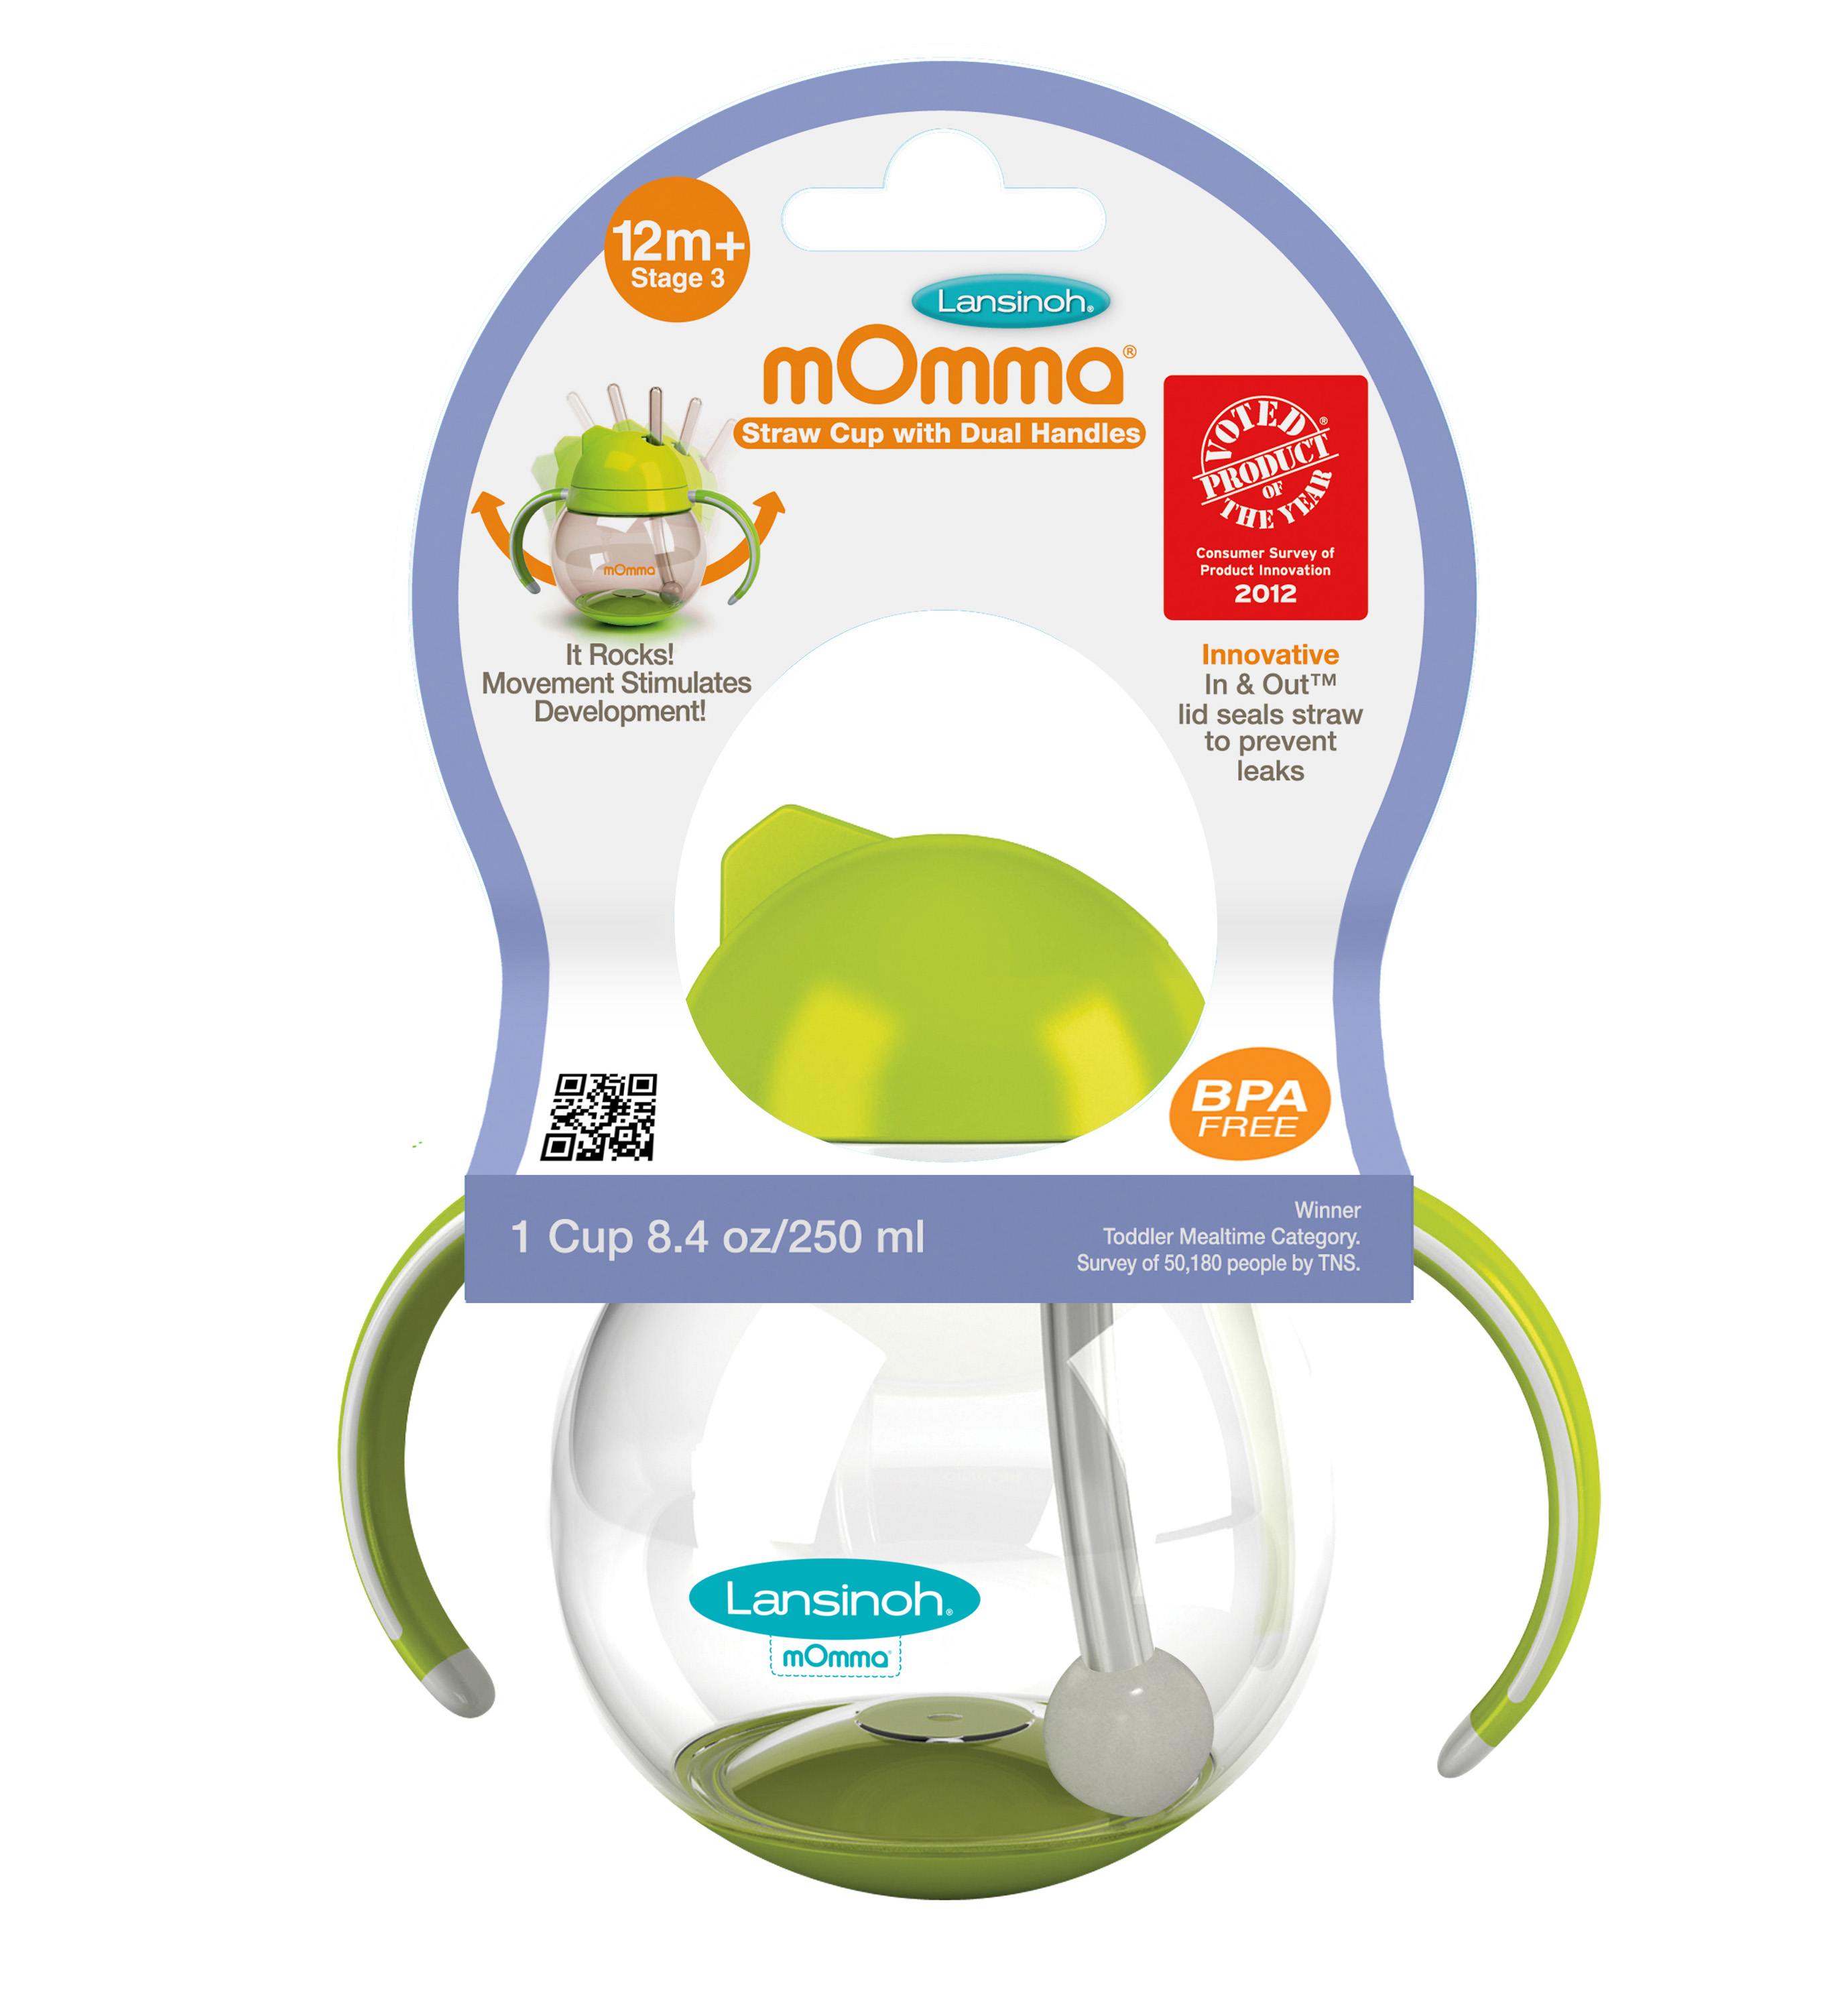 Lansinoh mOmma Straw Cut with Dual Handles, Green